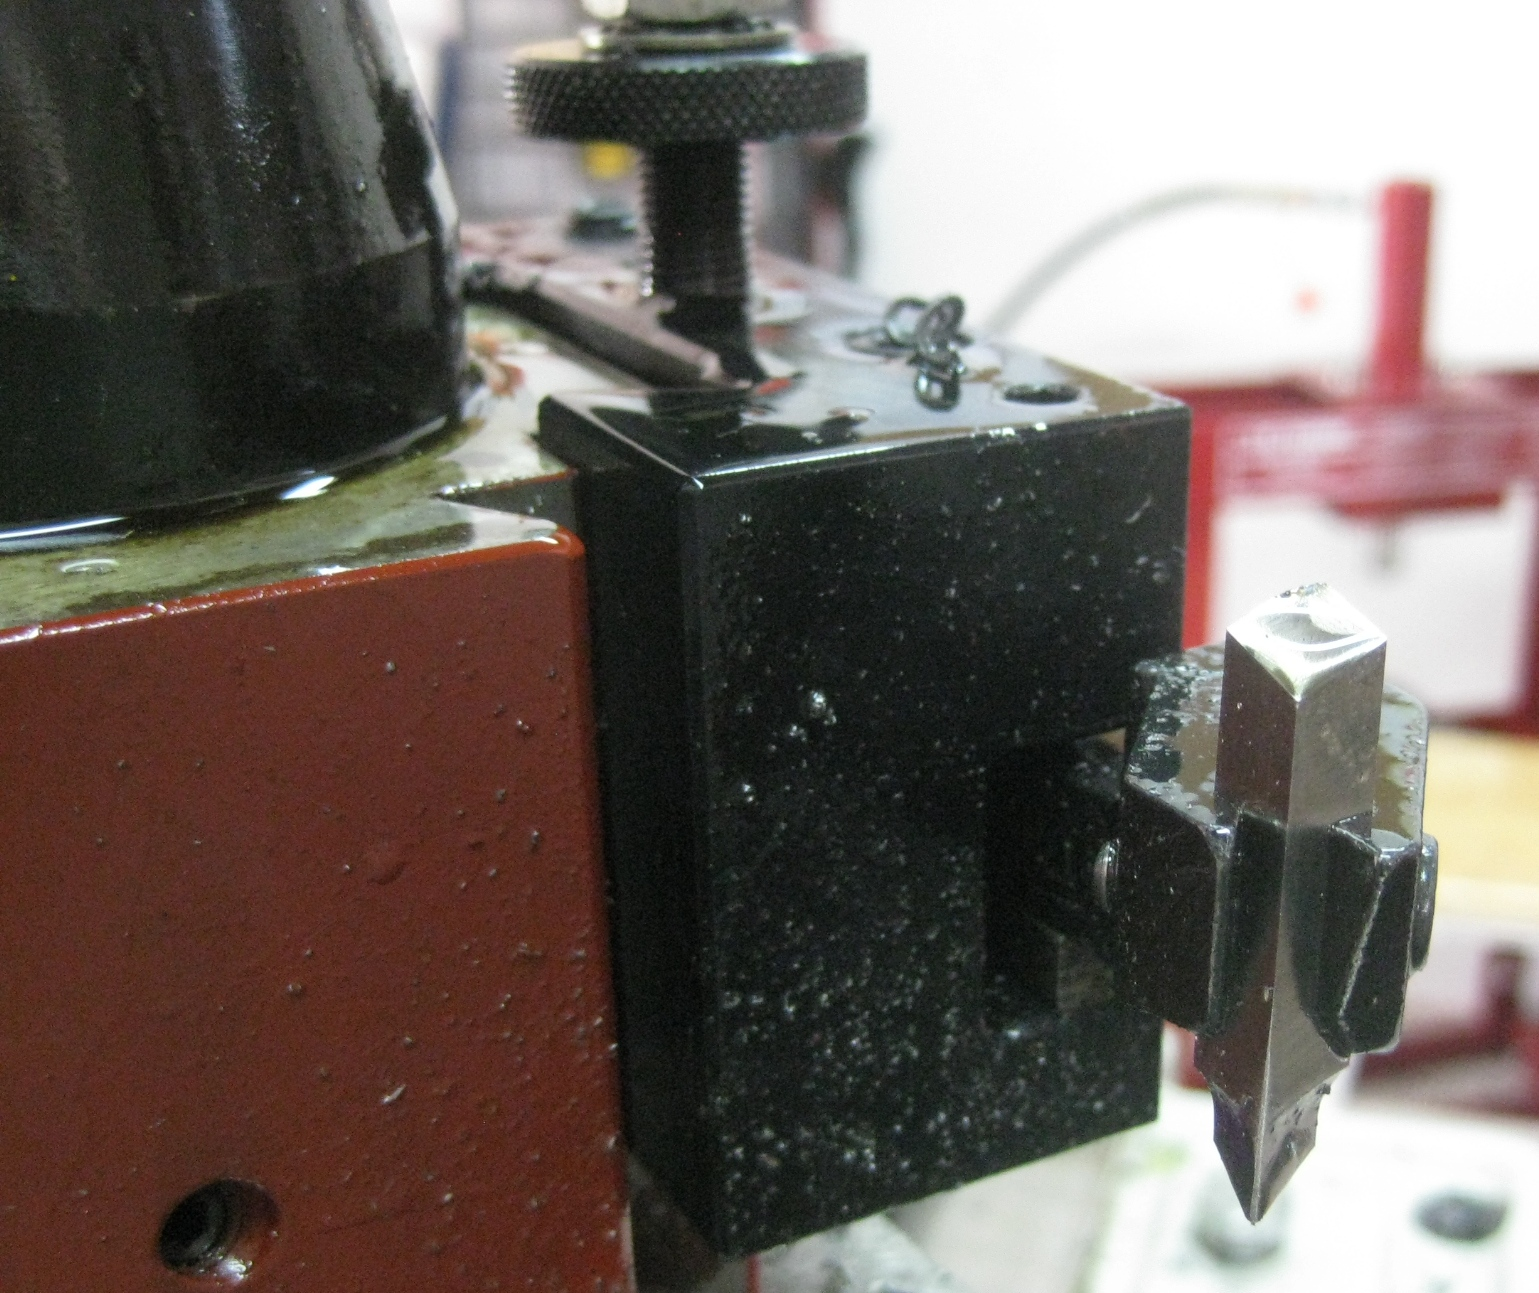 Image showing Close Up Photo of the Screw Cutting Tool from the Rear